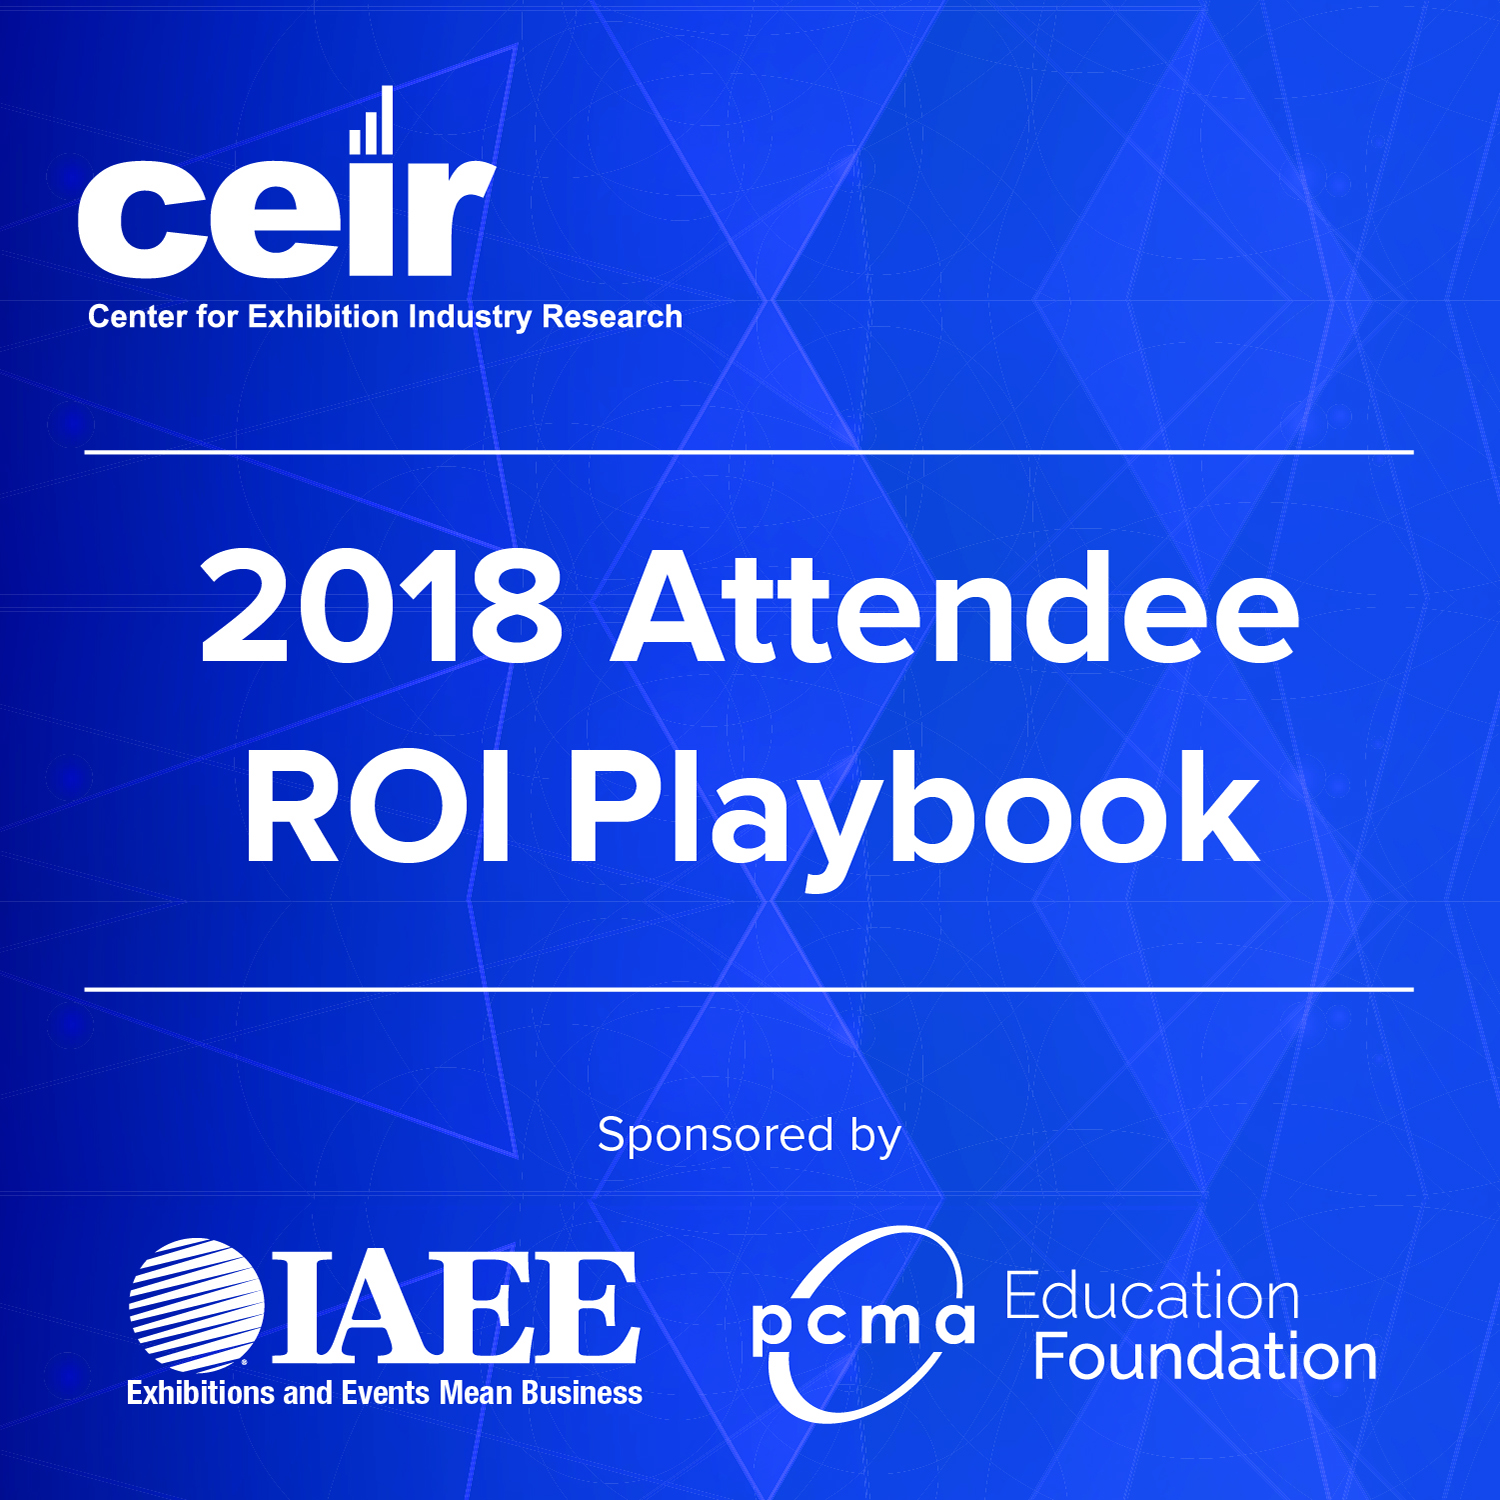 2018 Attendee ROI Playbook: Part 4